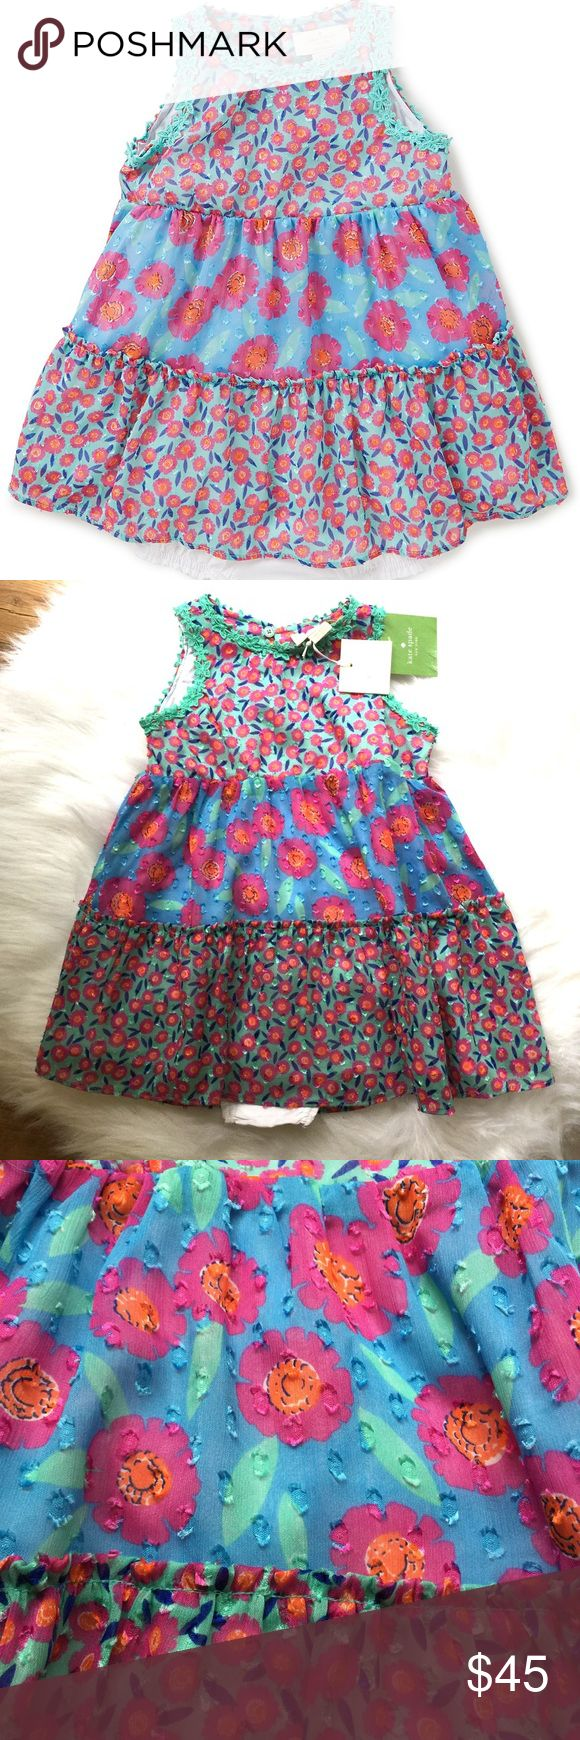 Kate Spade Babies Trapeze Dress Set Dress is polyester lined in 100% cotton. Comes with white cotton bloomers. Color is tangier floral kate spade Dresses